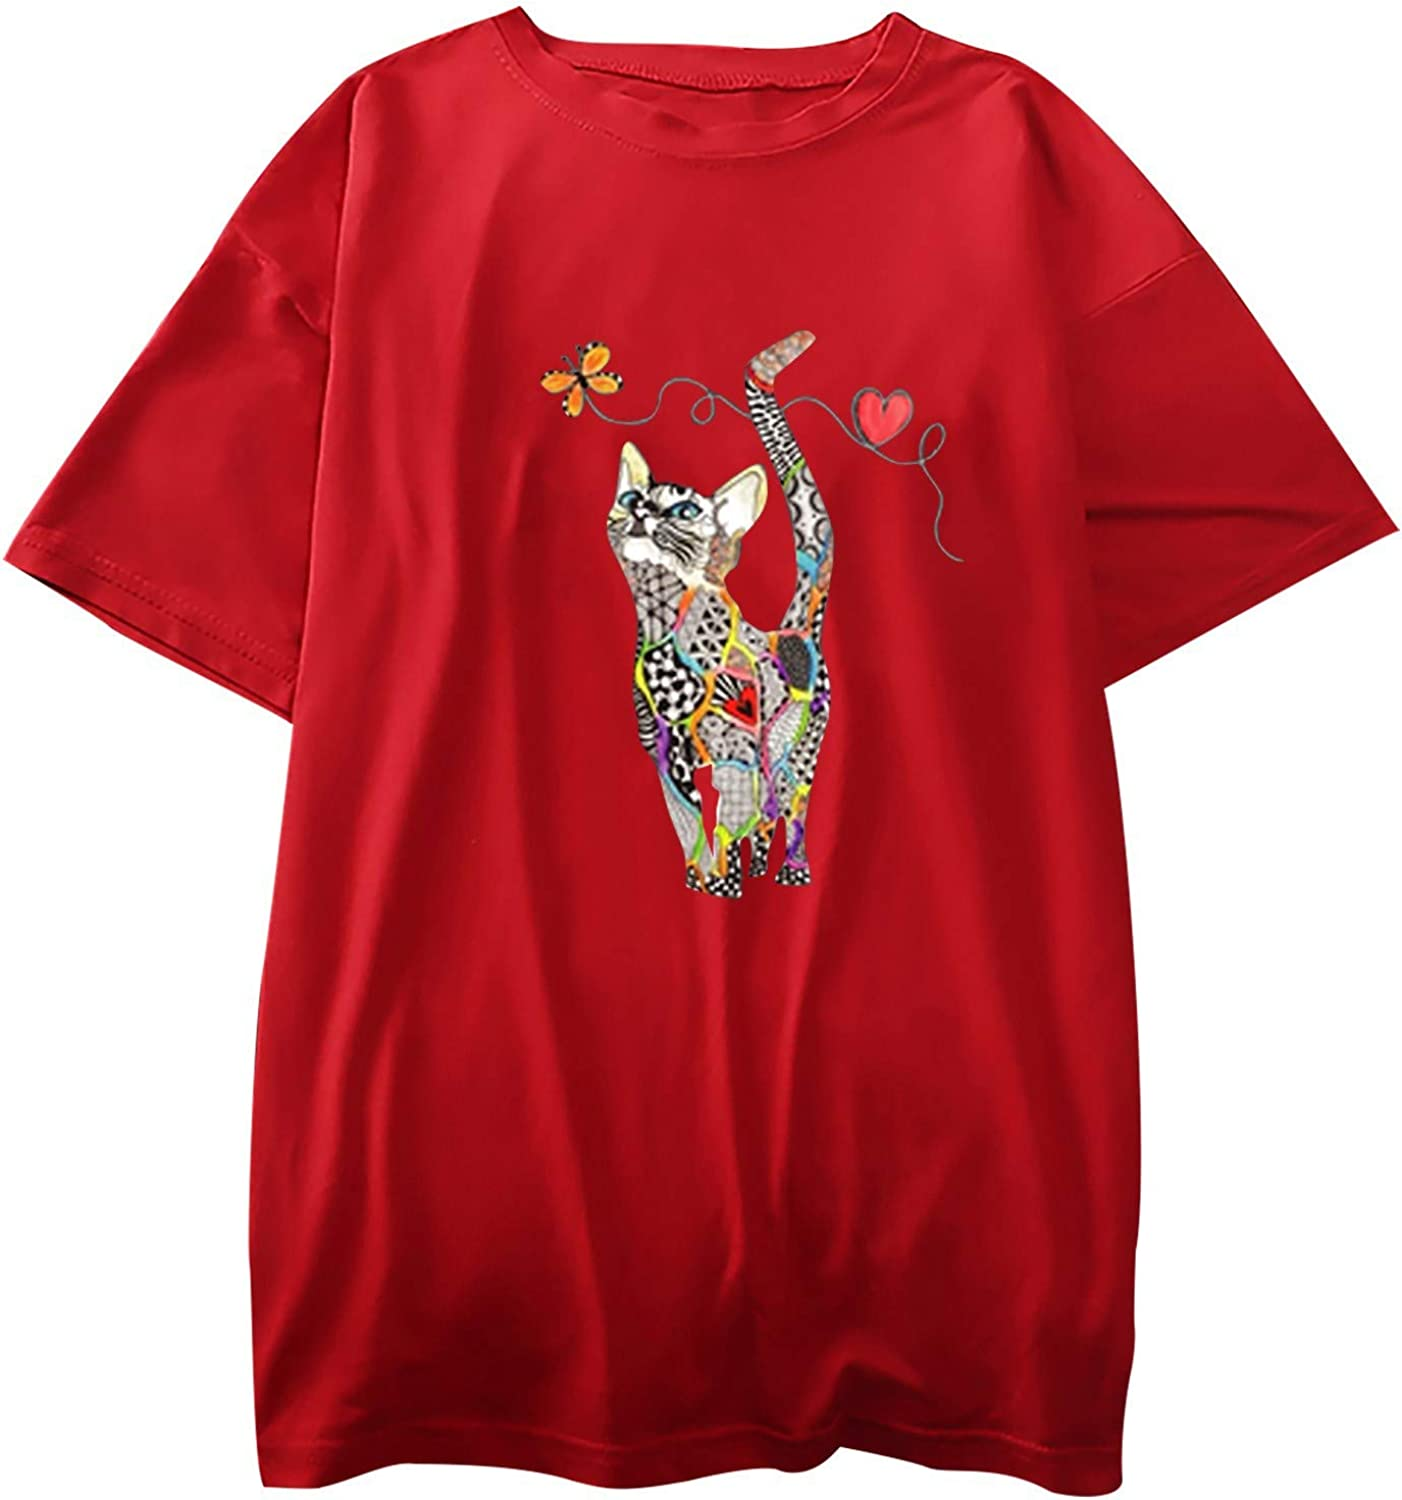 Valentine's Day Shirt for Womens Cute Cat T-Shirt Love Heart Printed Shirts Short Sleeve Graphic Tees Tops Summer